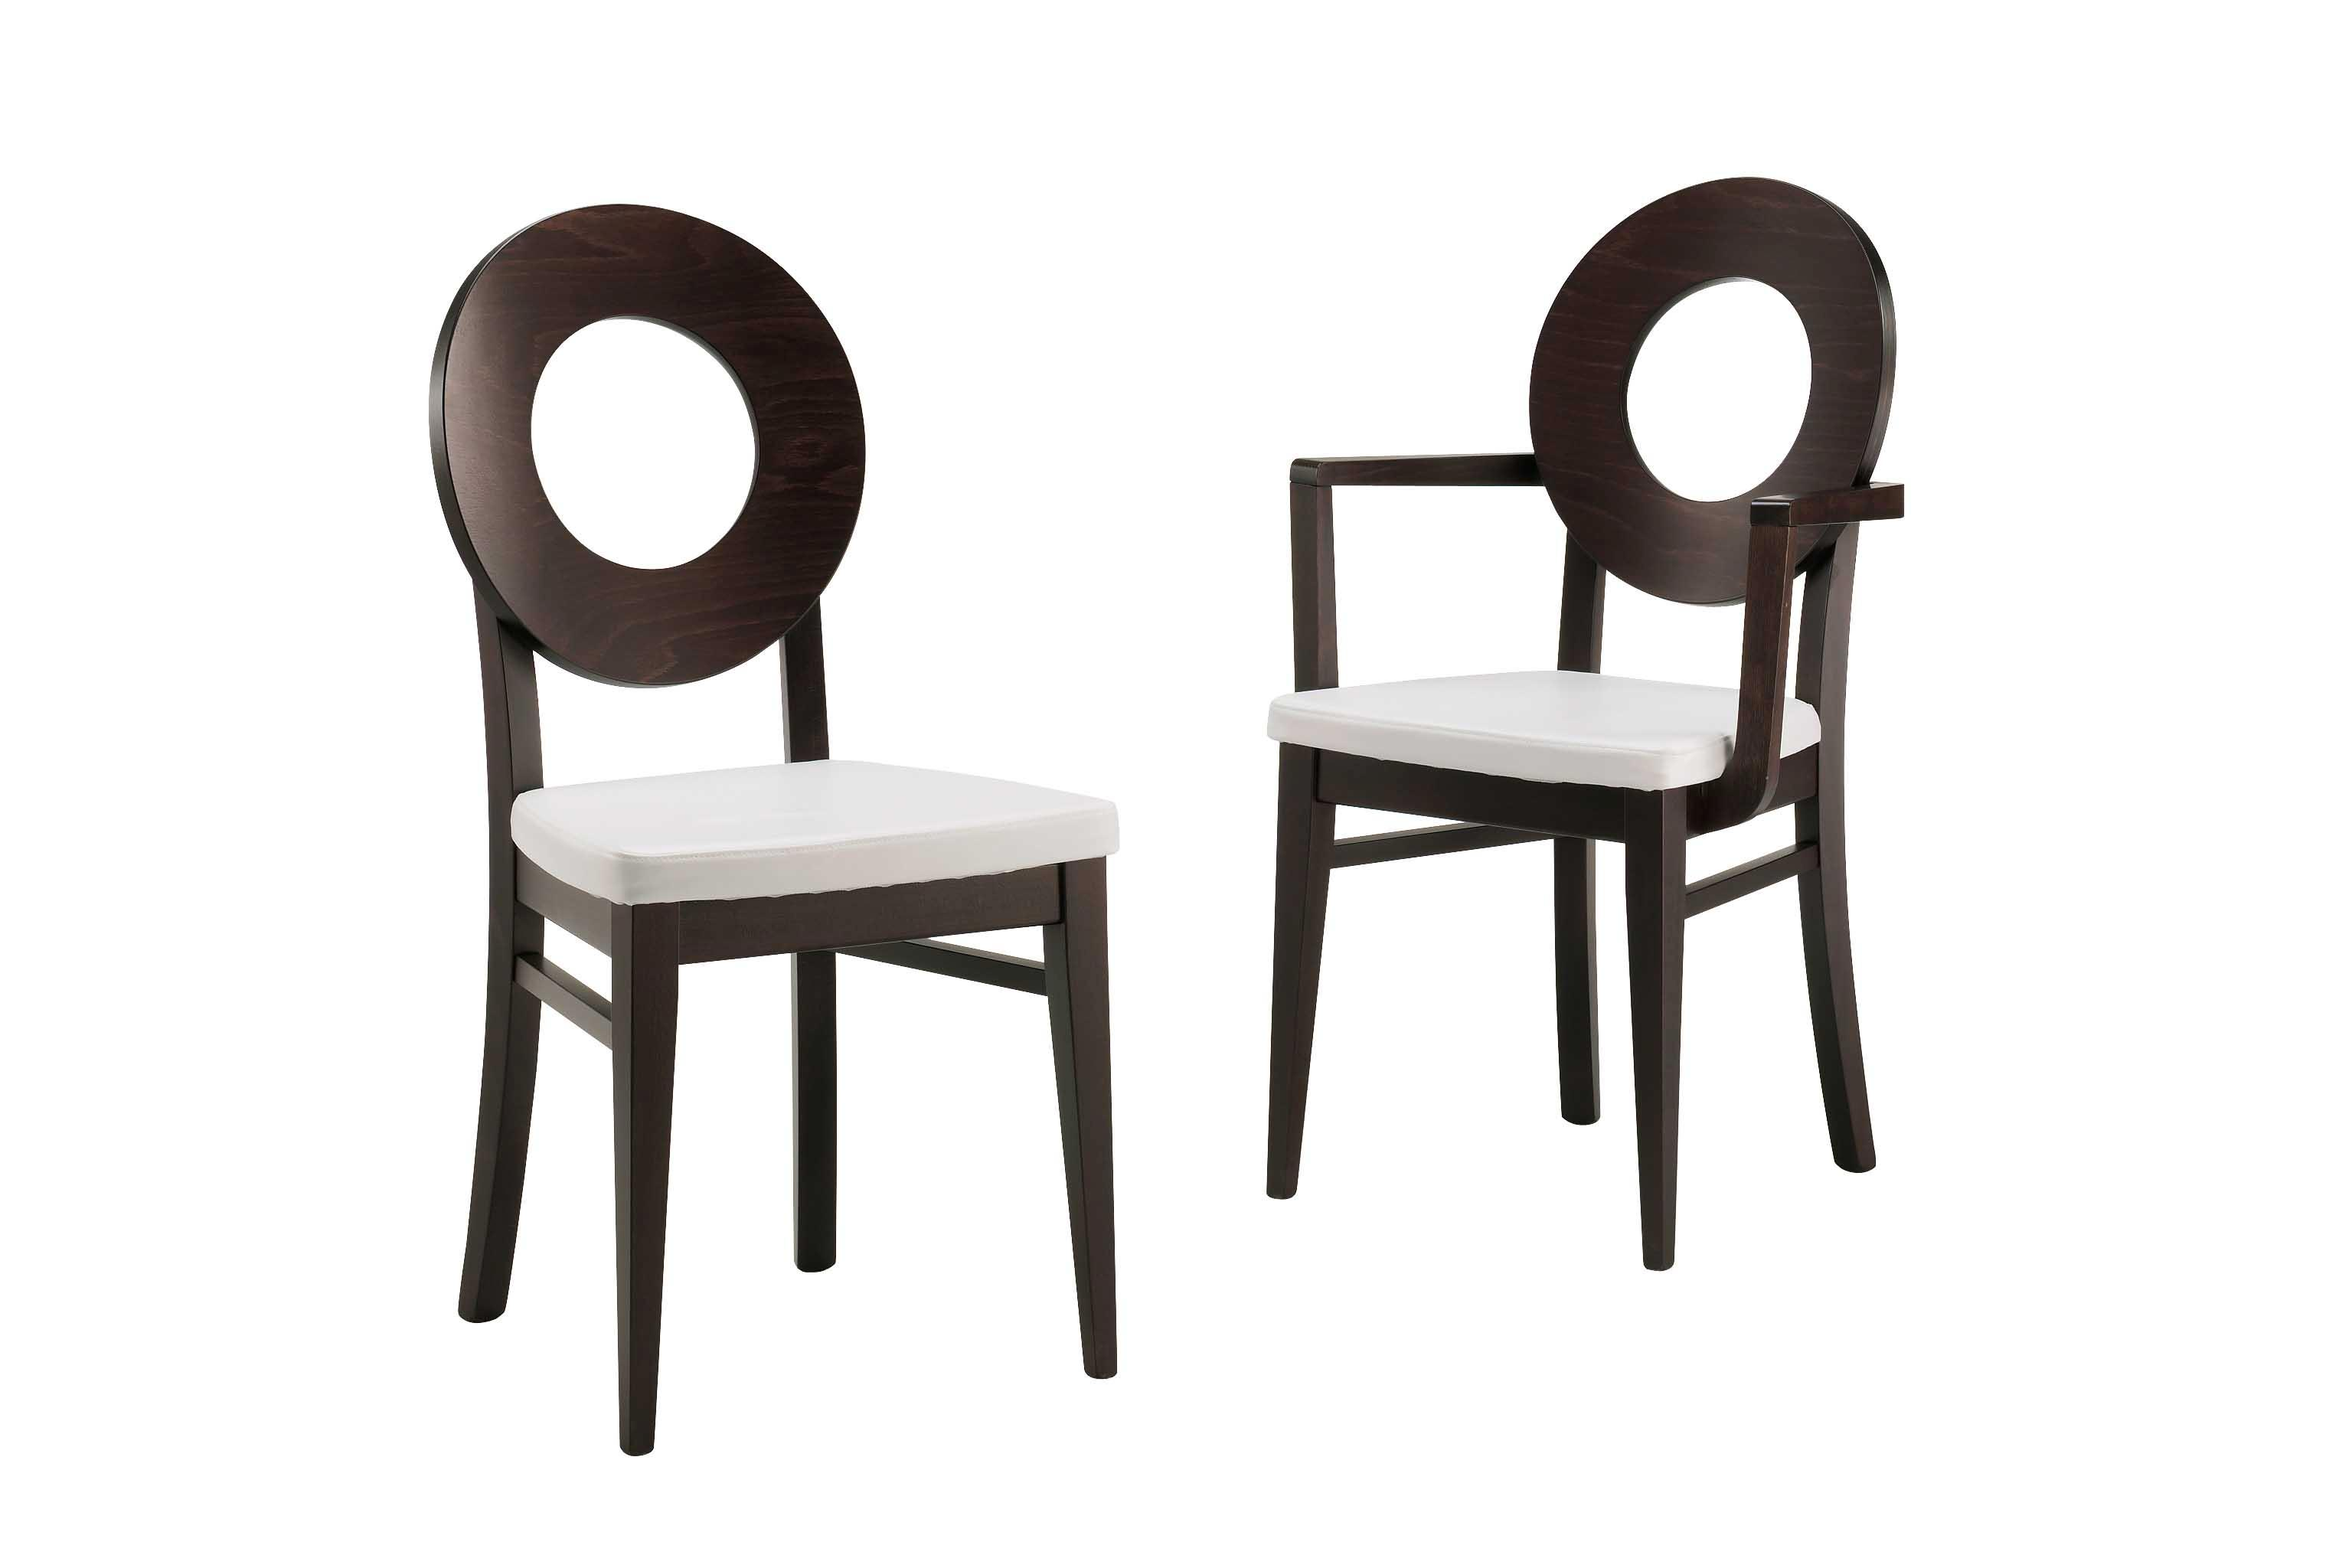 chaises de restaurant contemporain 4 0 10000 0 pi ces. Black Bedroom Furniture Sets. Home Design Ideas